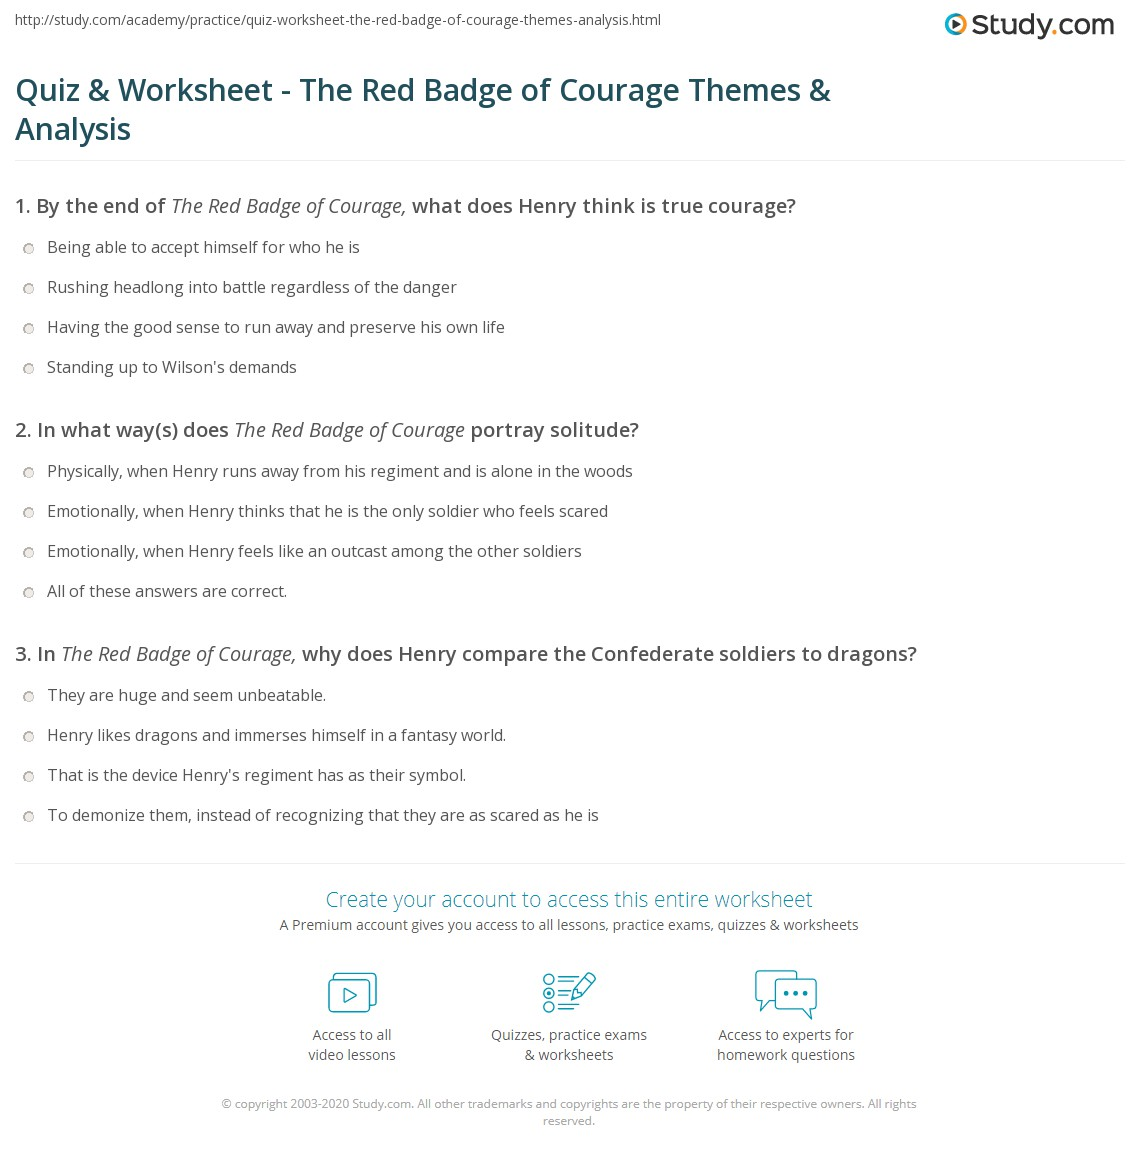 quiz worksheet the red badge of courage themes analysis print the red badge of courage themes analysis worksheet